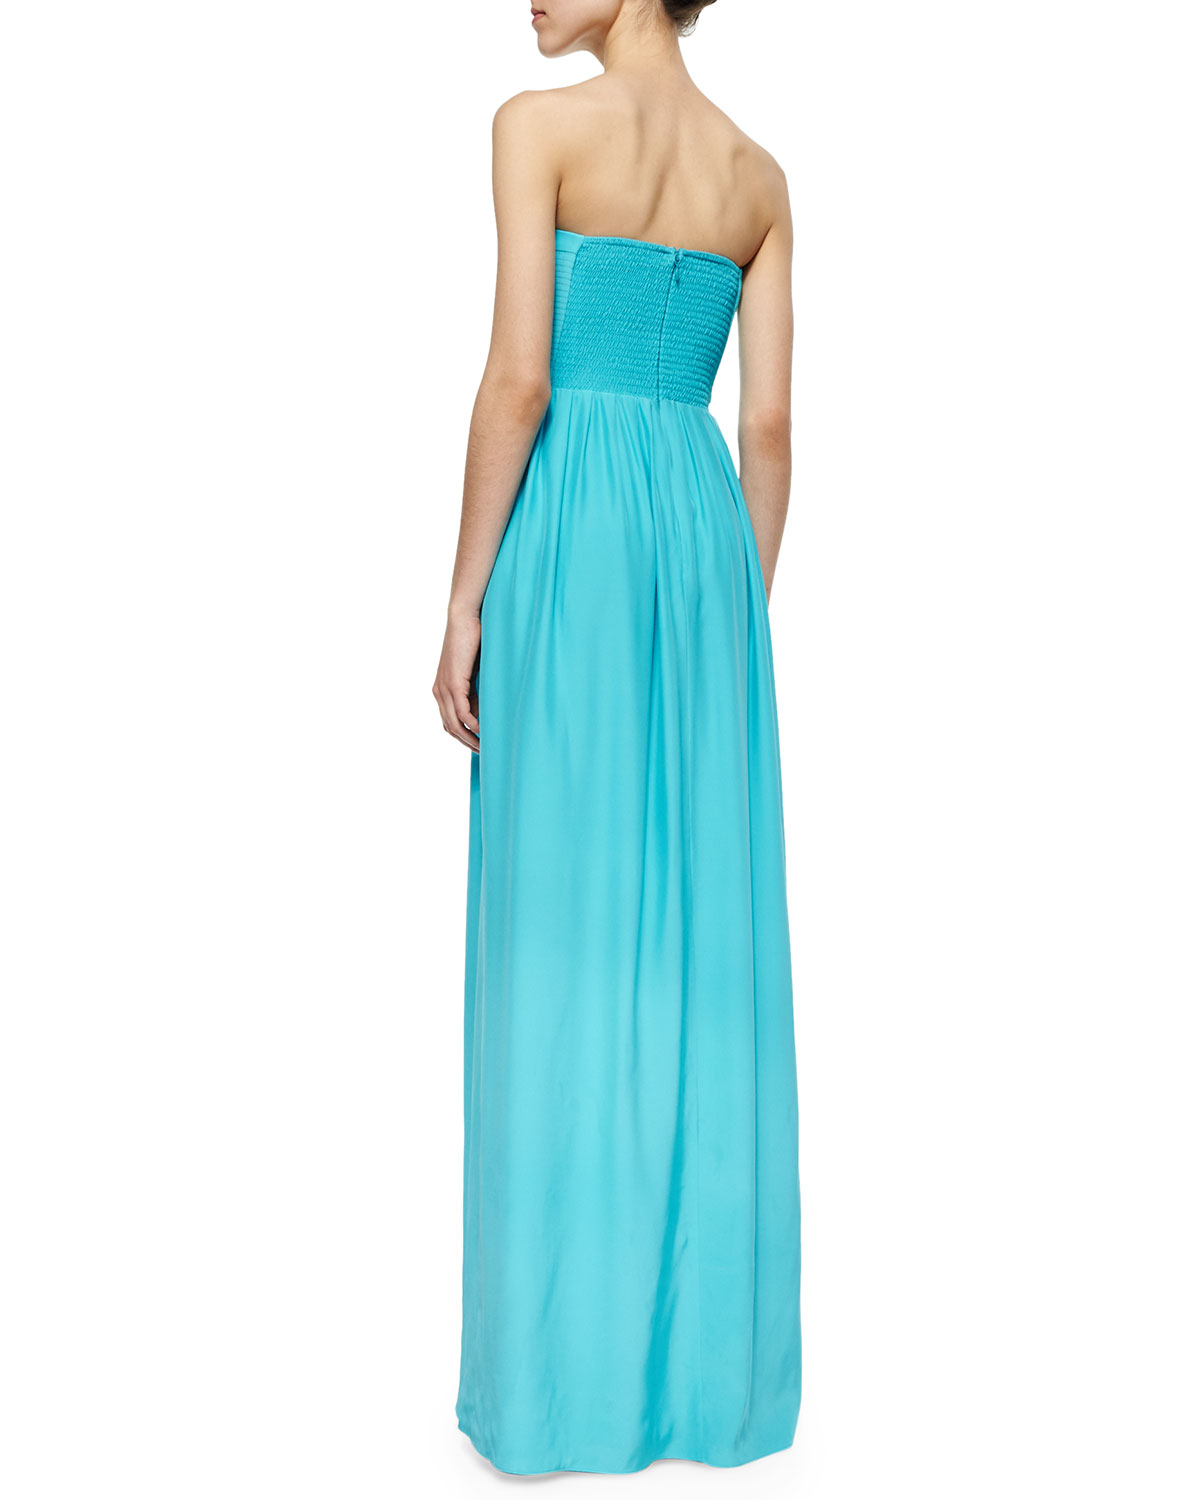 Parker Venice Strapless Maxi Dress in Blue | Lyst